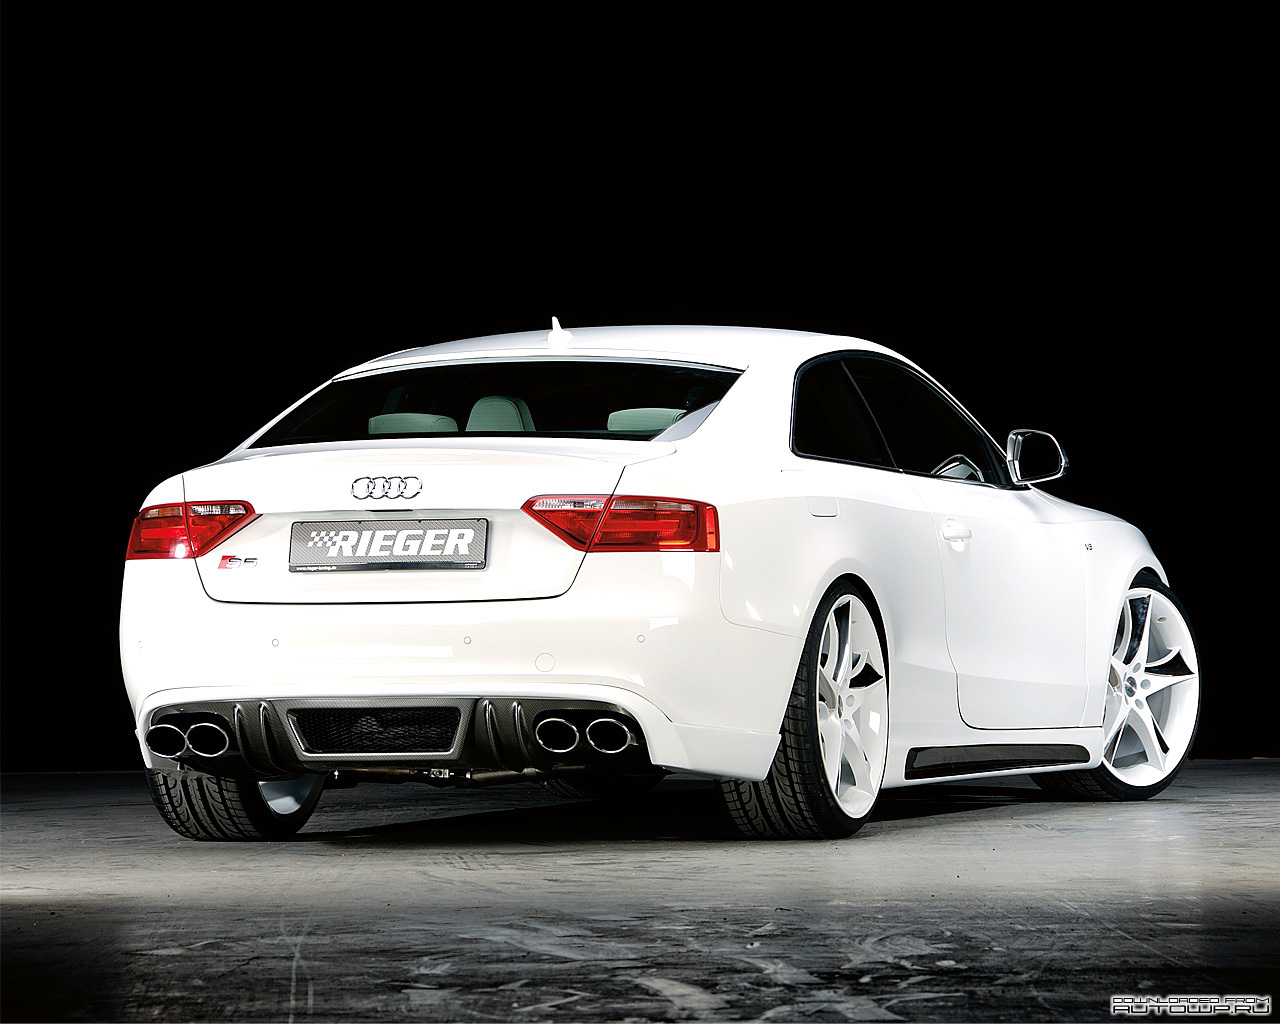 Audi S5 Coupe image #5